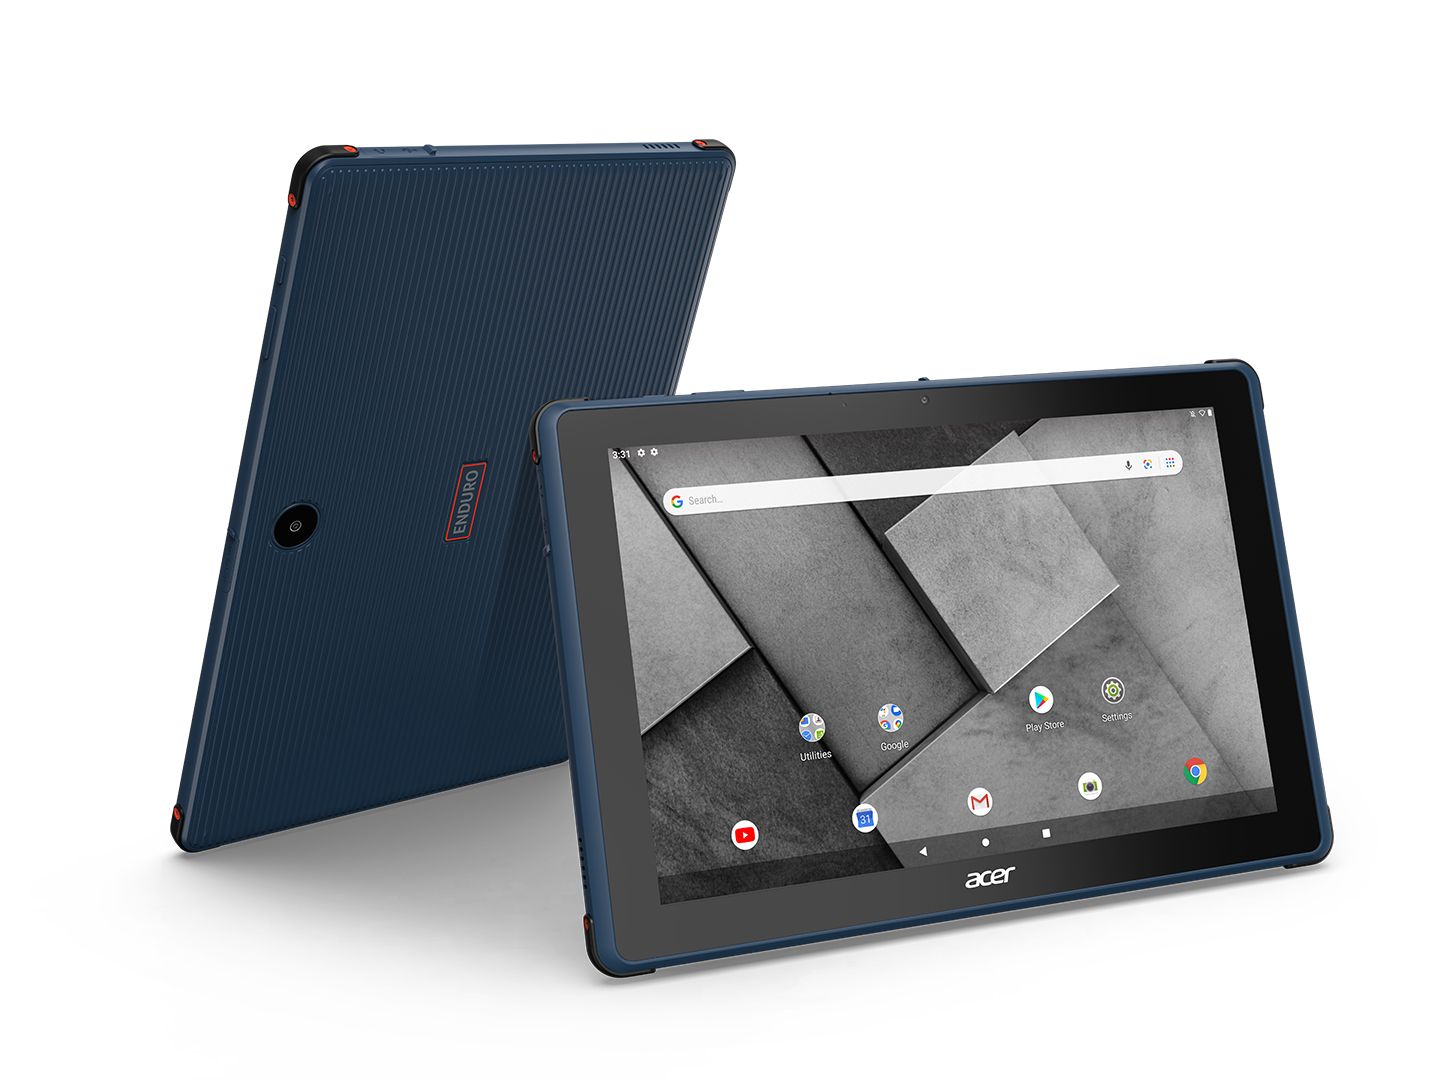 ENDURO Urban T1 body Acer Reveals New Rugged Notebook And Tablet